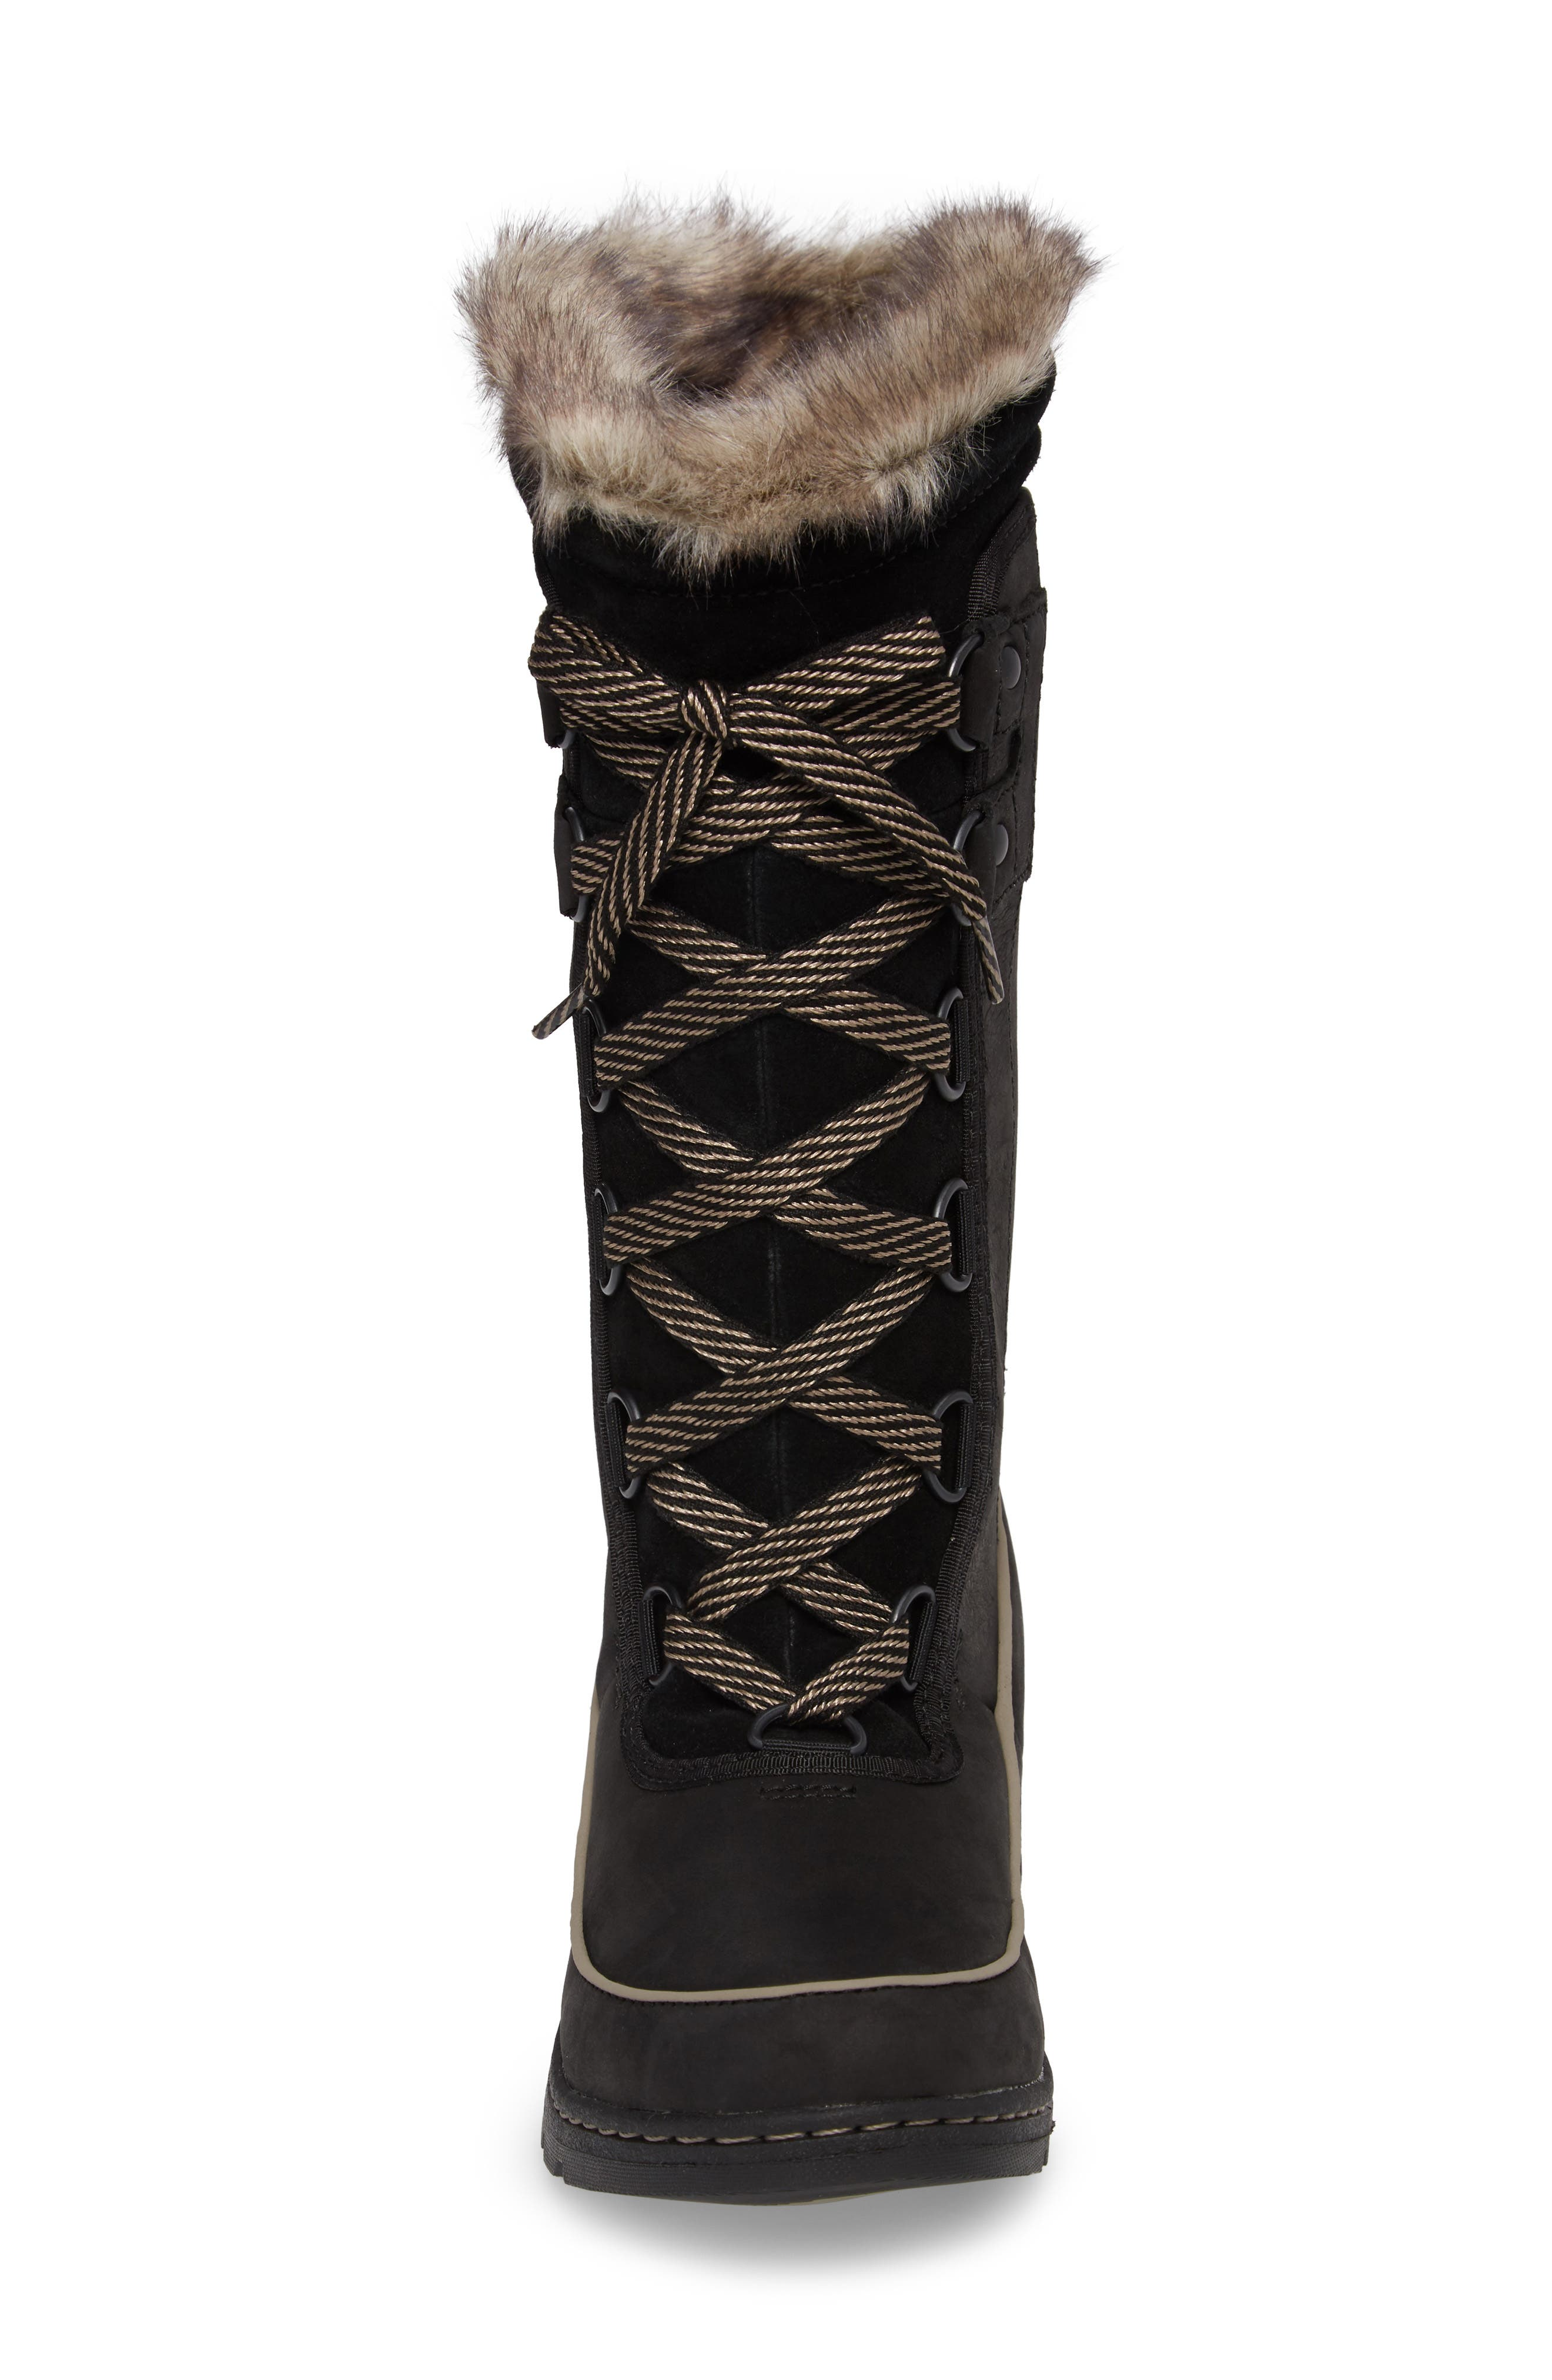 Tivoli II Insulated Winter Boot with Faux Fur Trim,                             Alternate thumbnail 4, color,                             010